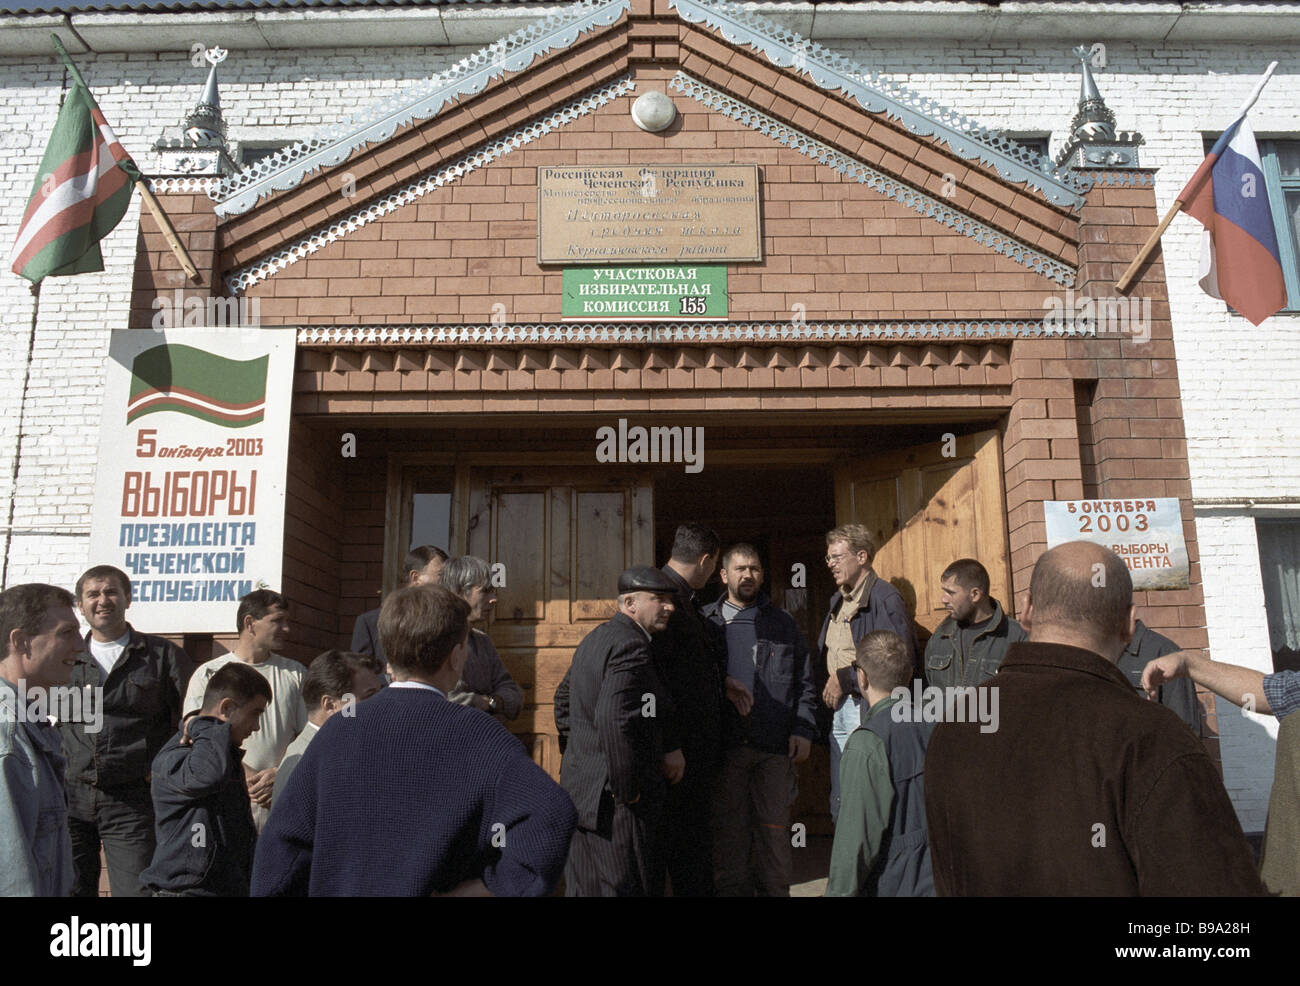 Polling place 155 in Tsentoroy village - Stock Image